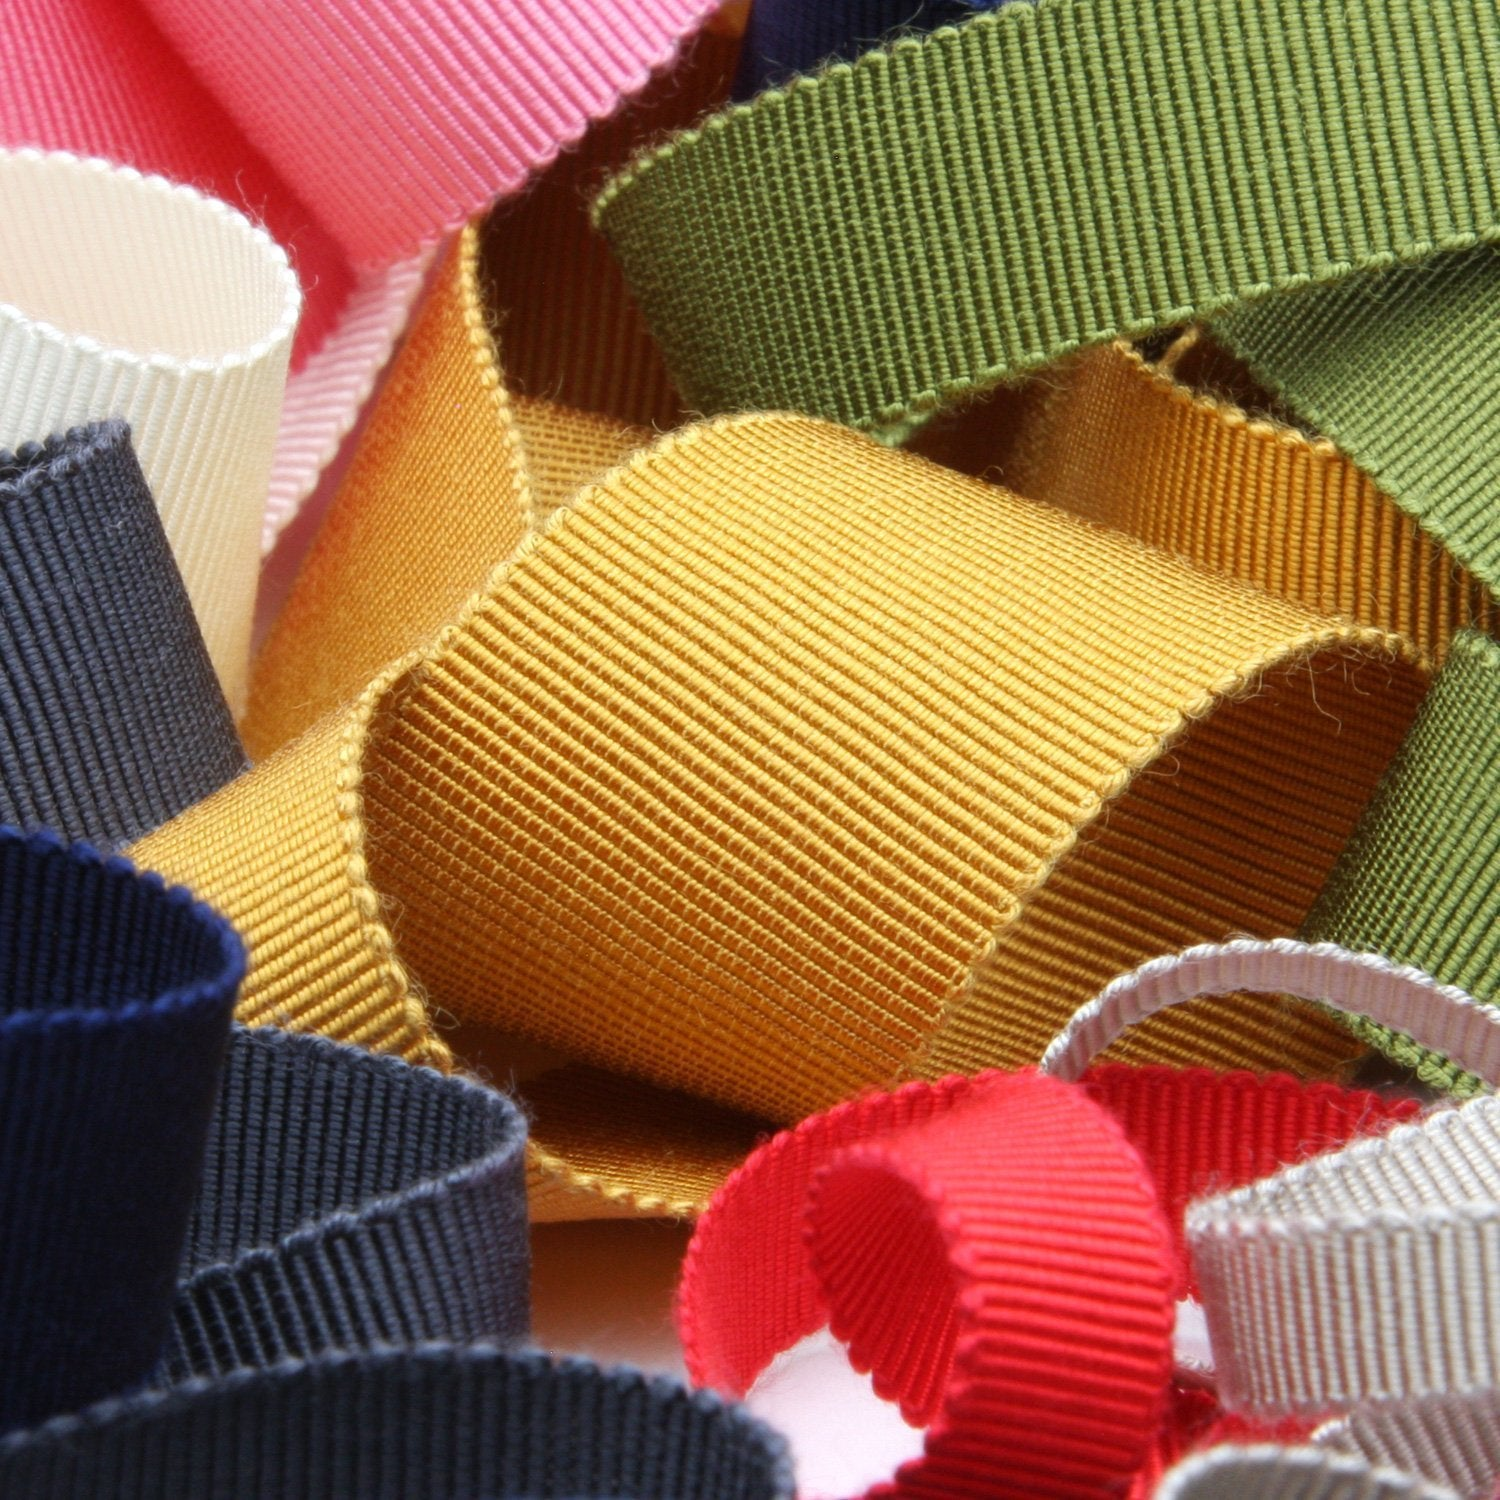 FUJIYAMA RIBBON Rayon Grosgrain Ribbon 38mm 9.14 Meters Roll